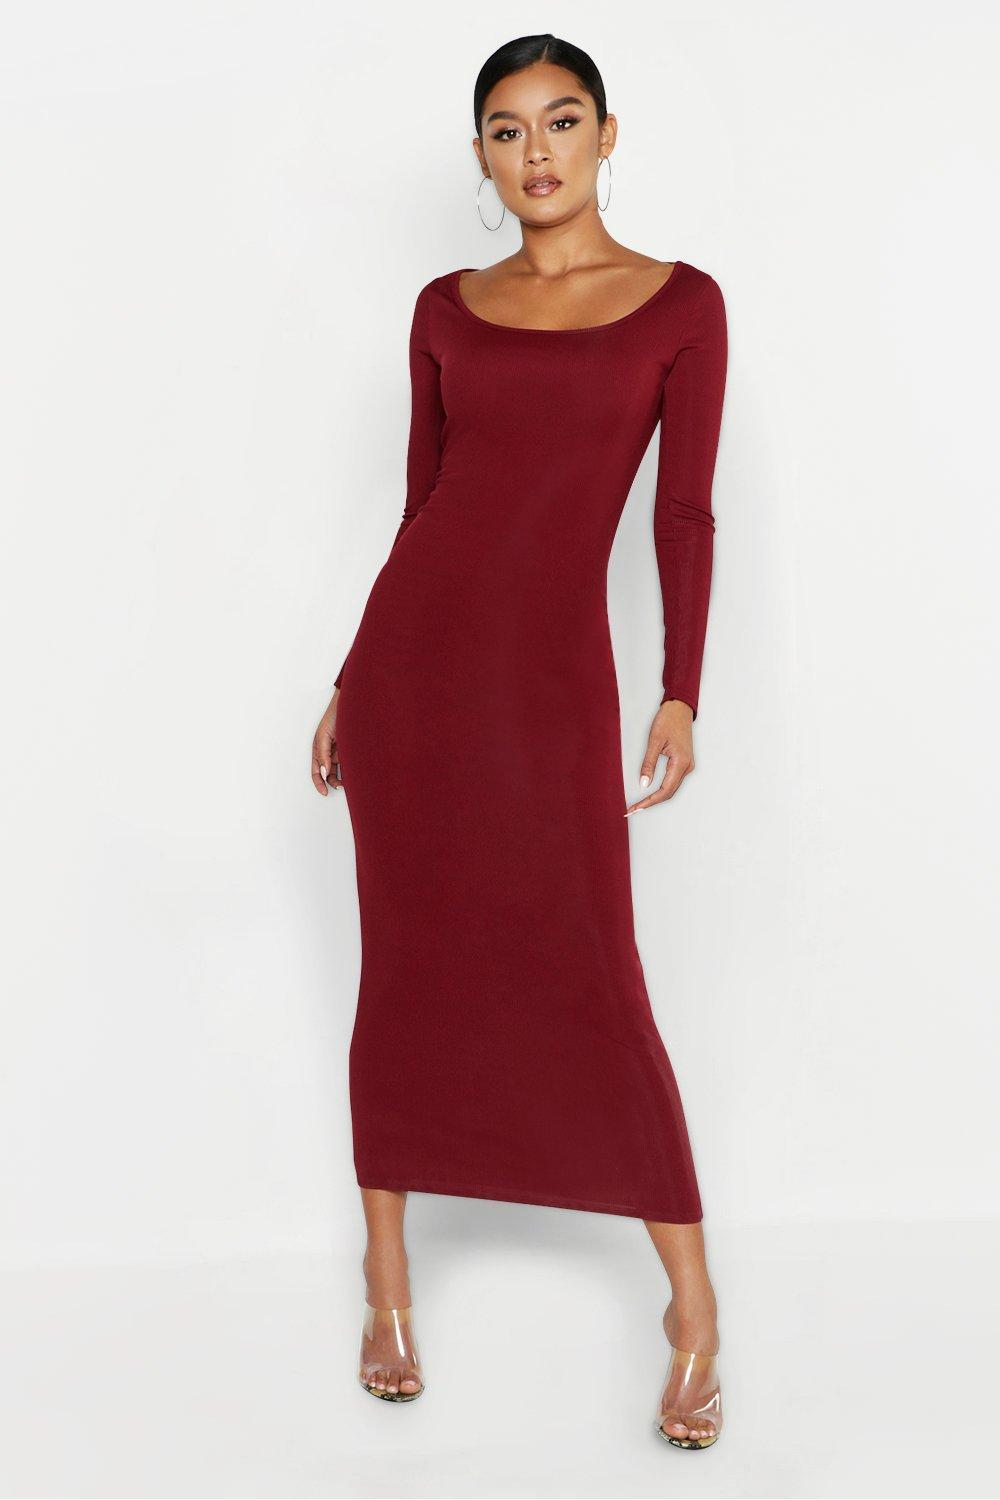 51aec01007e53 Boohoo Scoop Neck Long Sleeve Ribbed Midaxi Dress in Red - Lyst